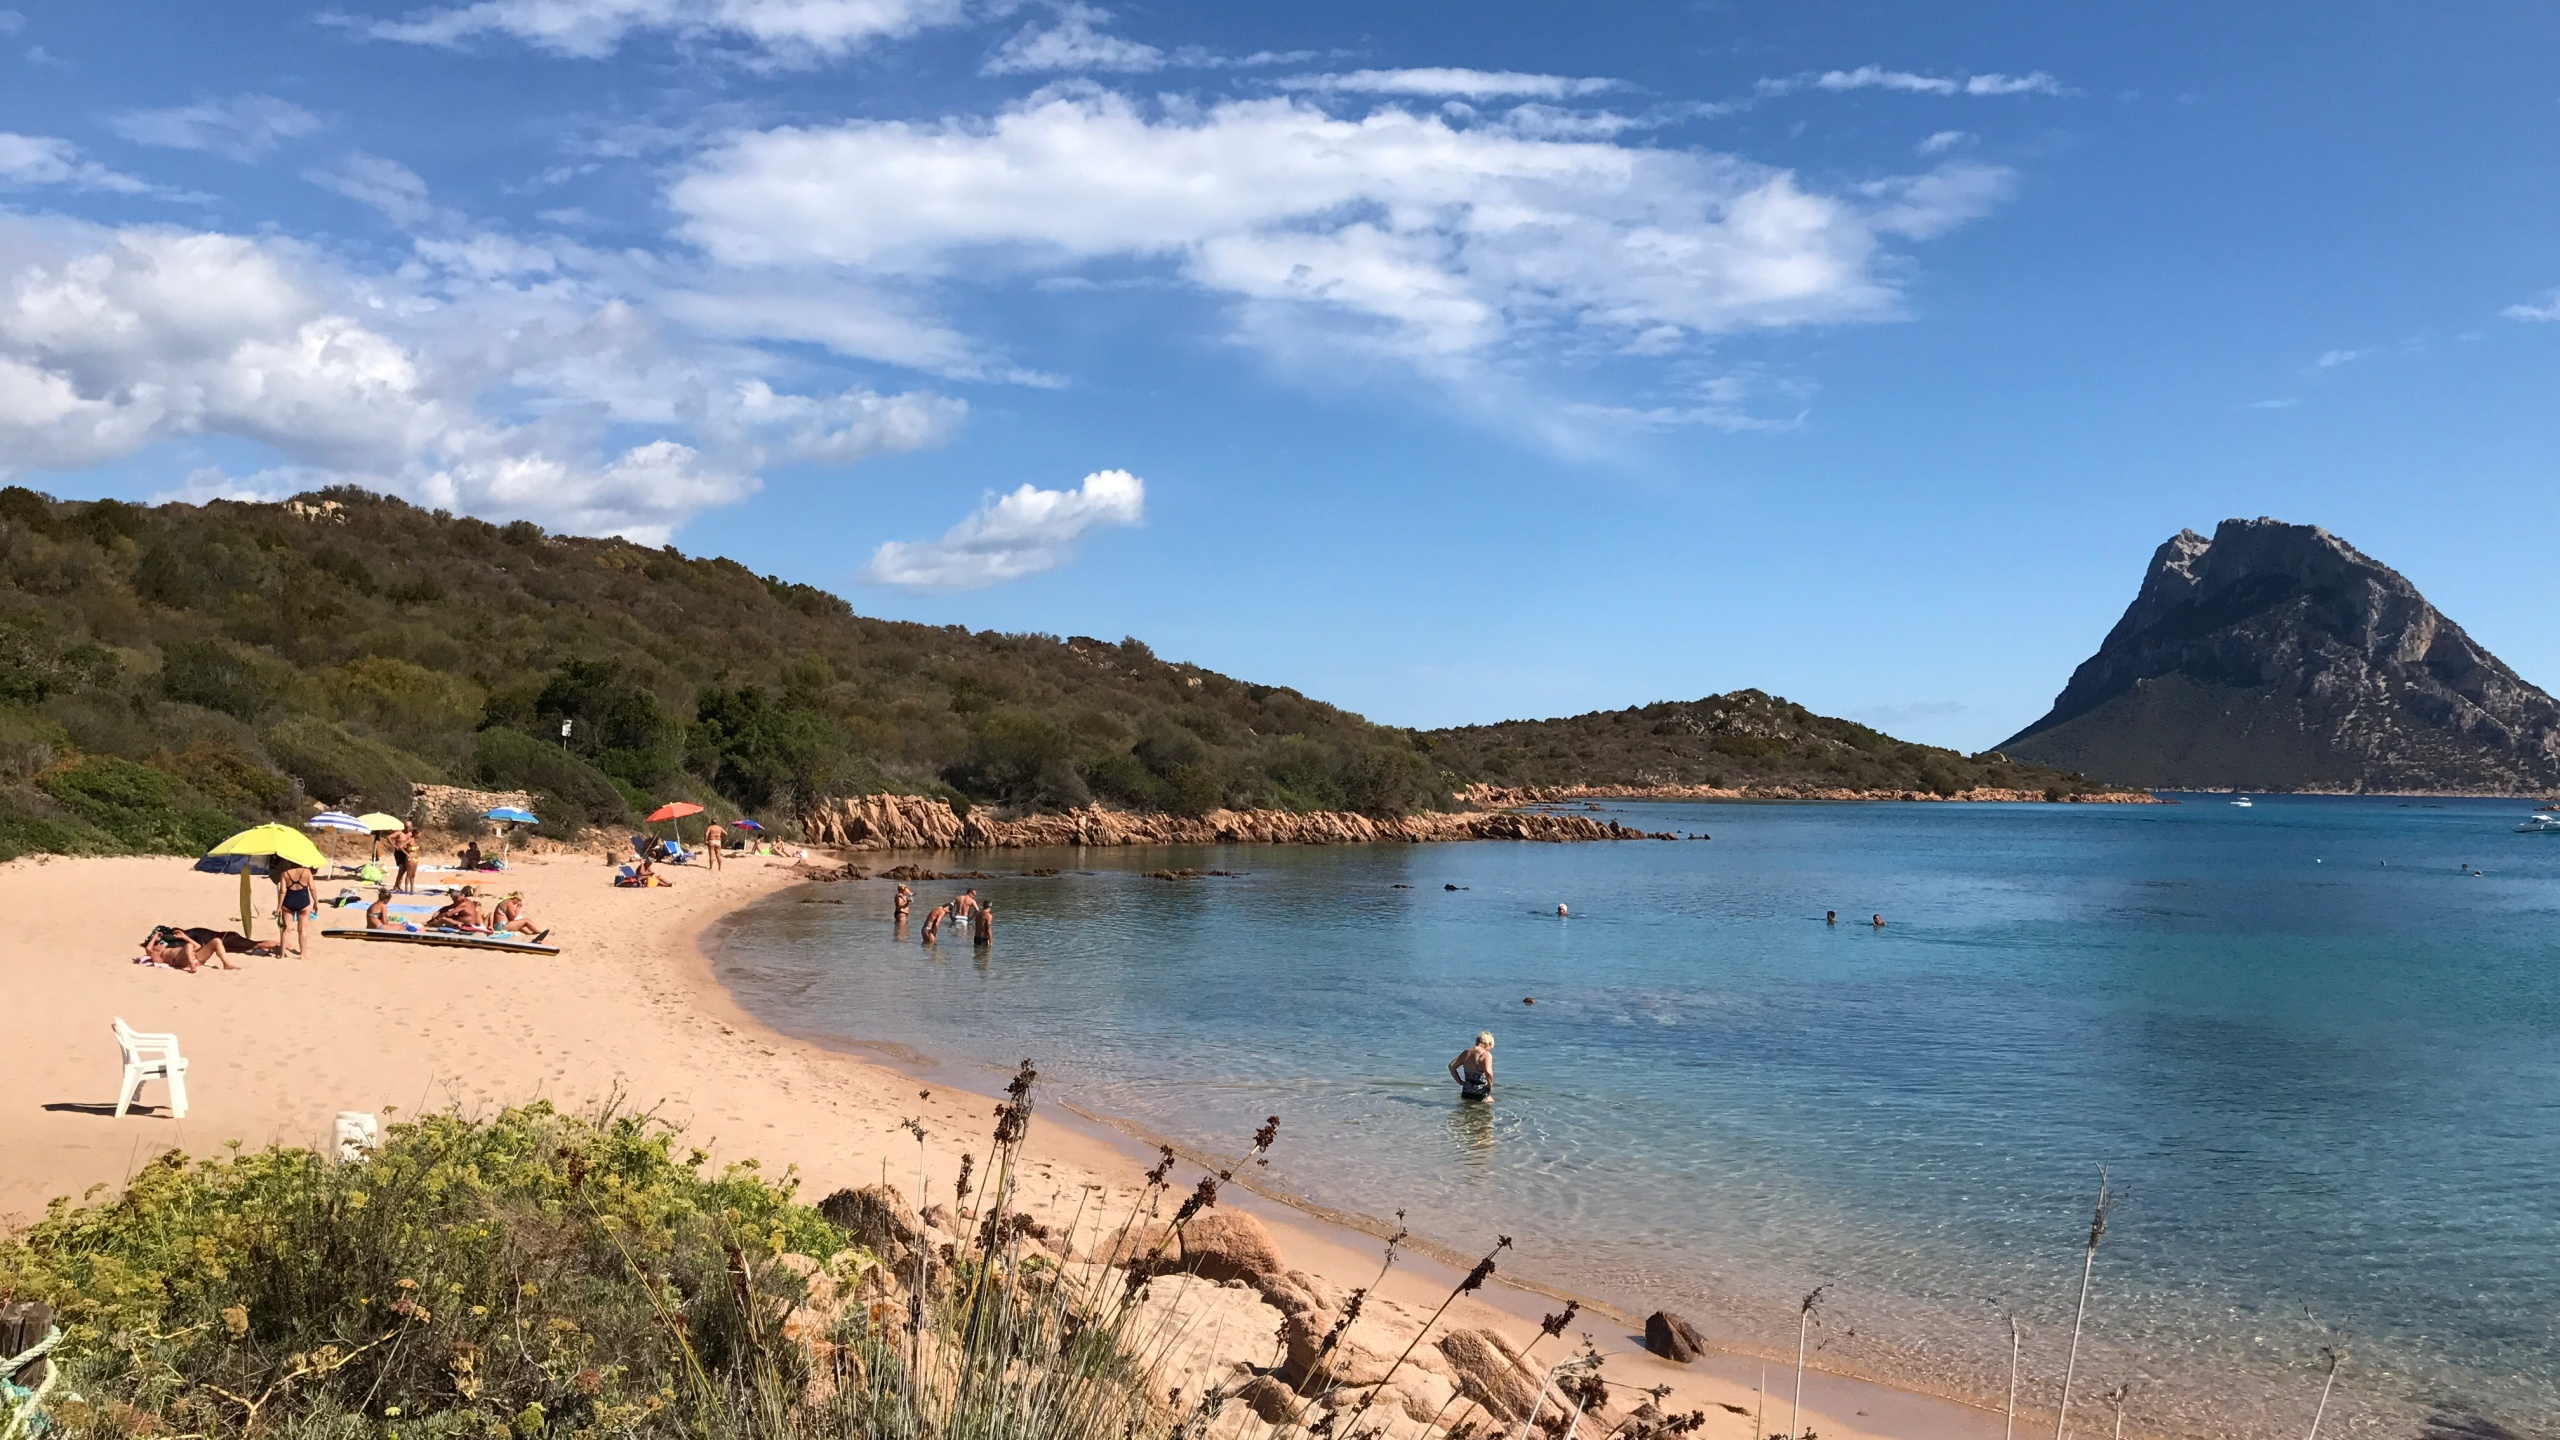 A secluded beach in Porto San Paolo on the eastern coast of the Italian island of Sardinia is seen on September 18, 2017. (Credit: DANIEL SLIM/AFP/Getty Images)